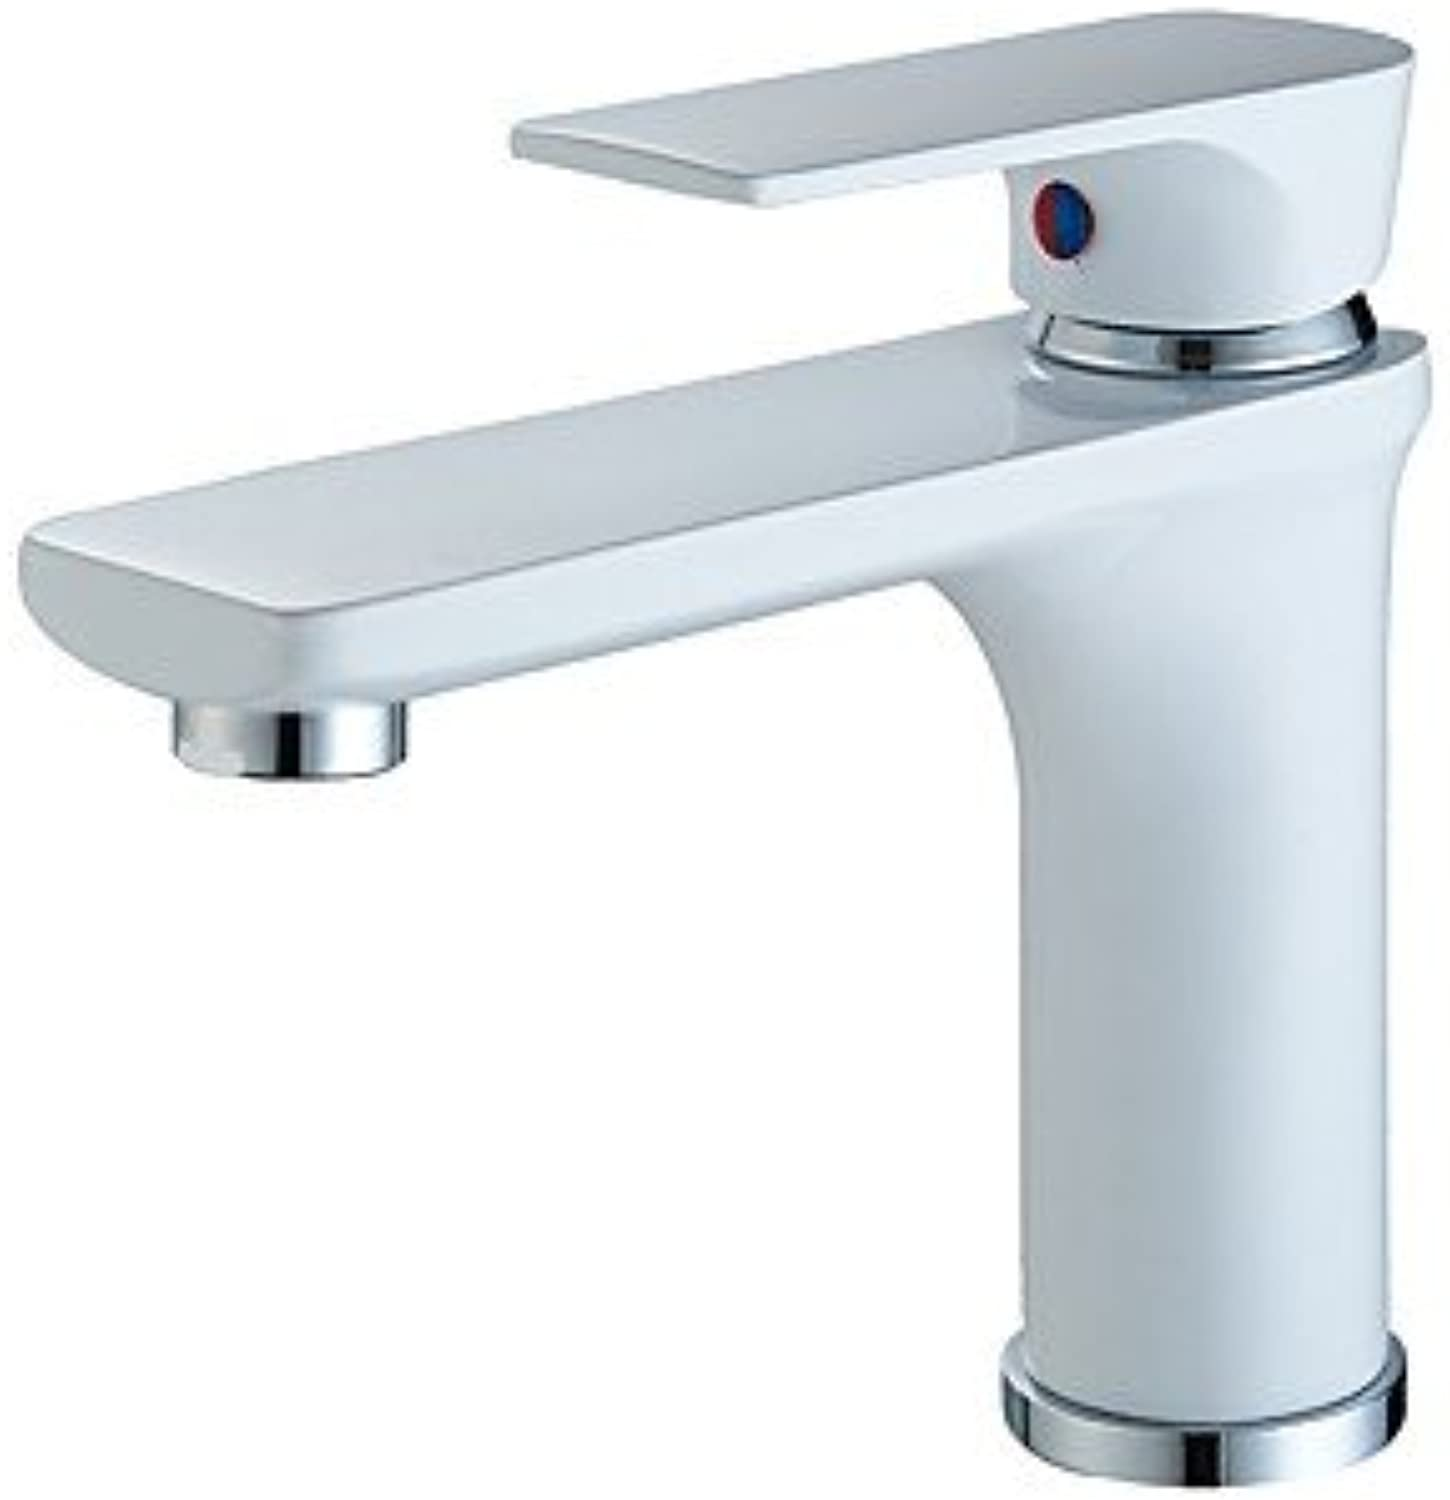 SQL Contemporary Centerset Widespread with Ceramic Valve Single Handle One Hole for Painting , Bathroom Sink Faucet